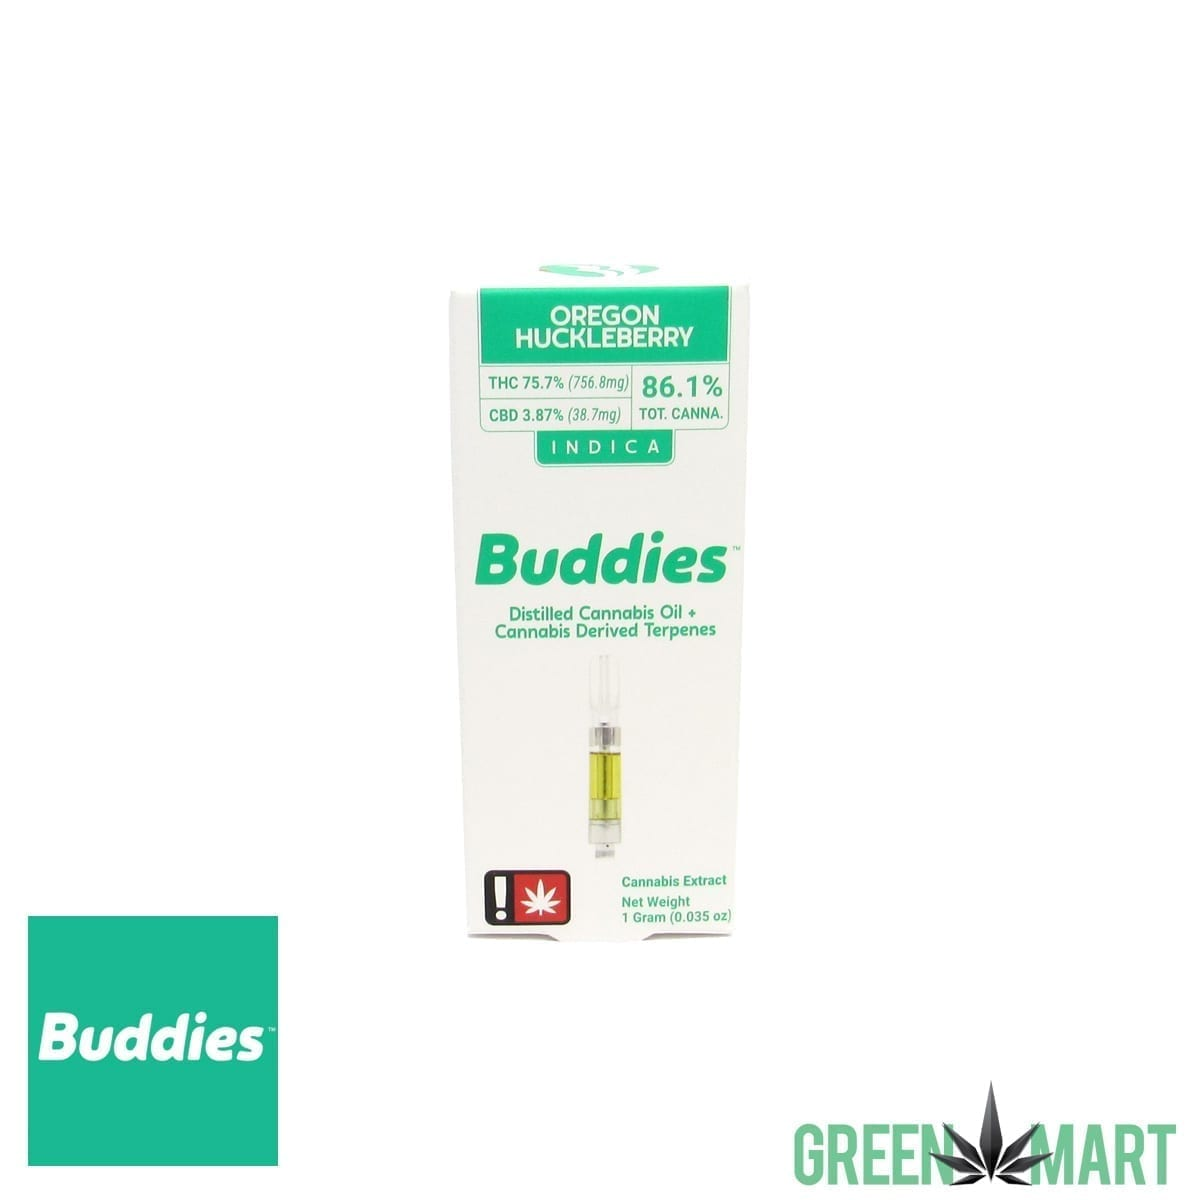 Buddies Brand Distillate Cartridge - Oregon Huckleberry